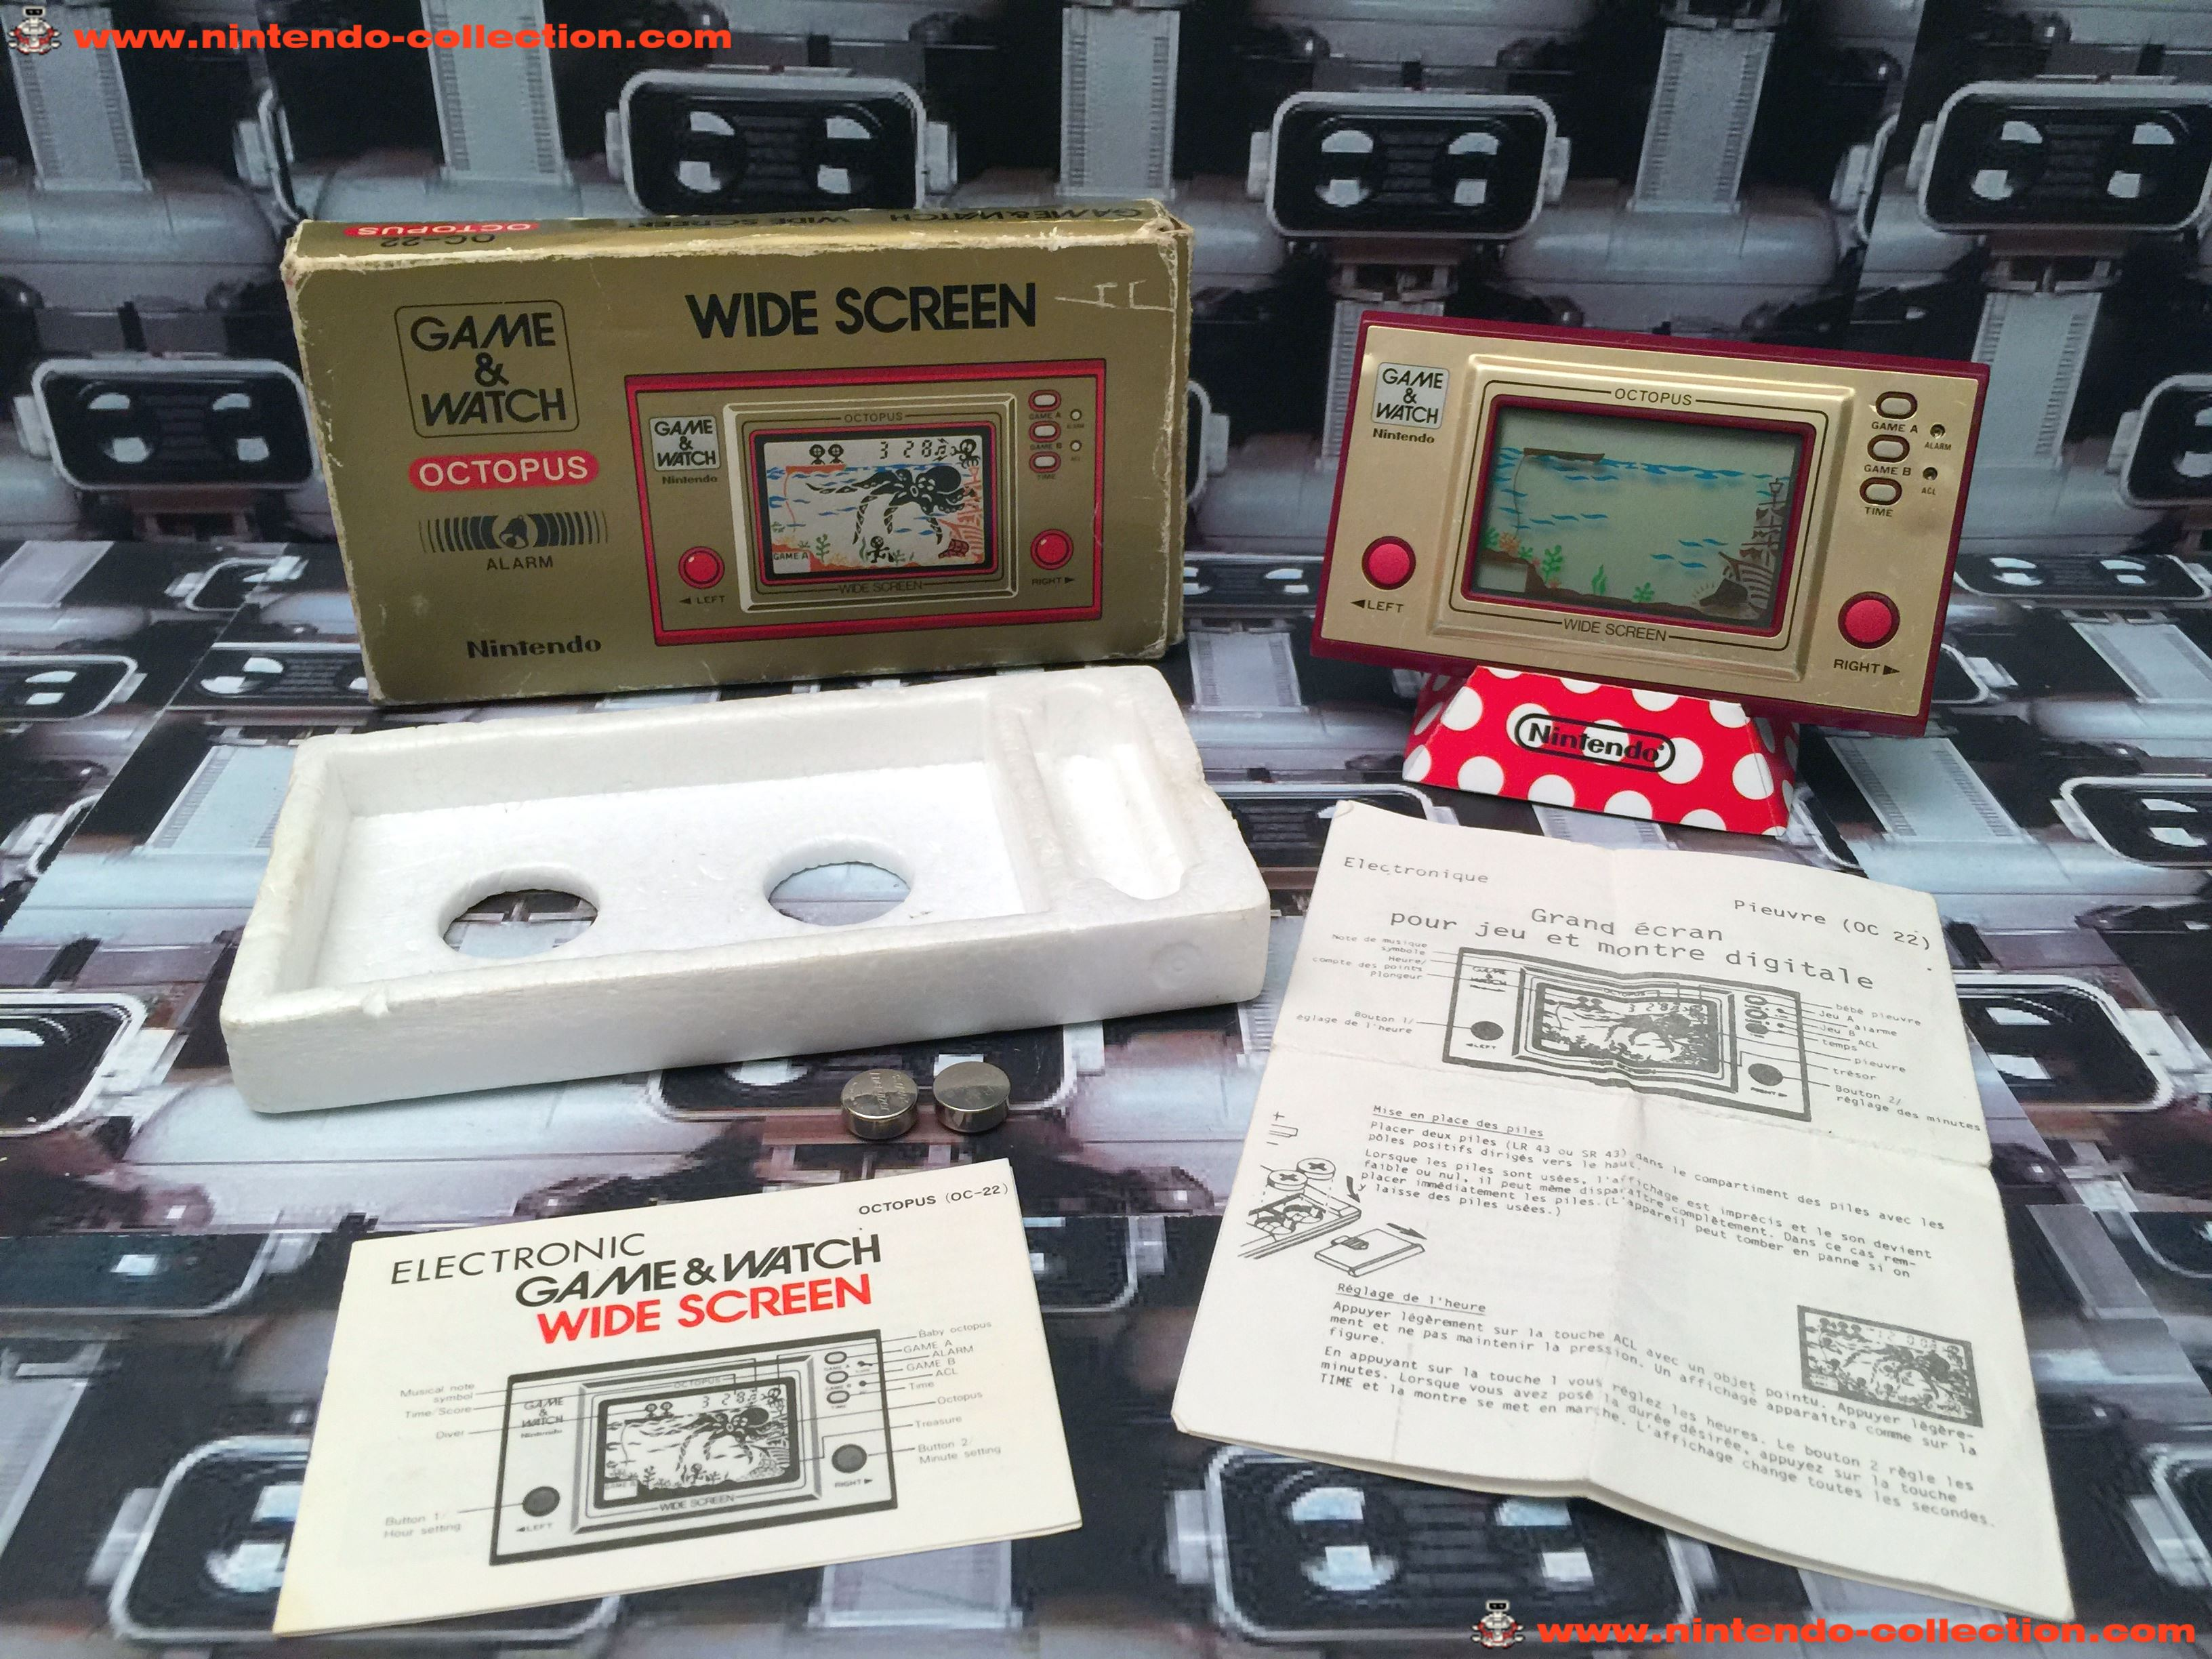 www.nintendo-collection.com - Game & Watch Wide Screen Octopus in box en boite